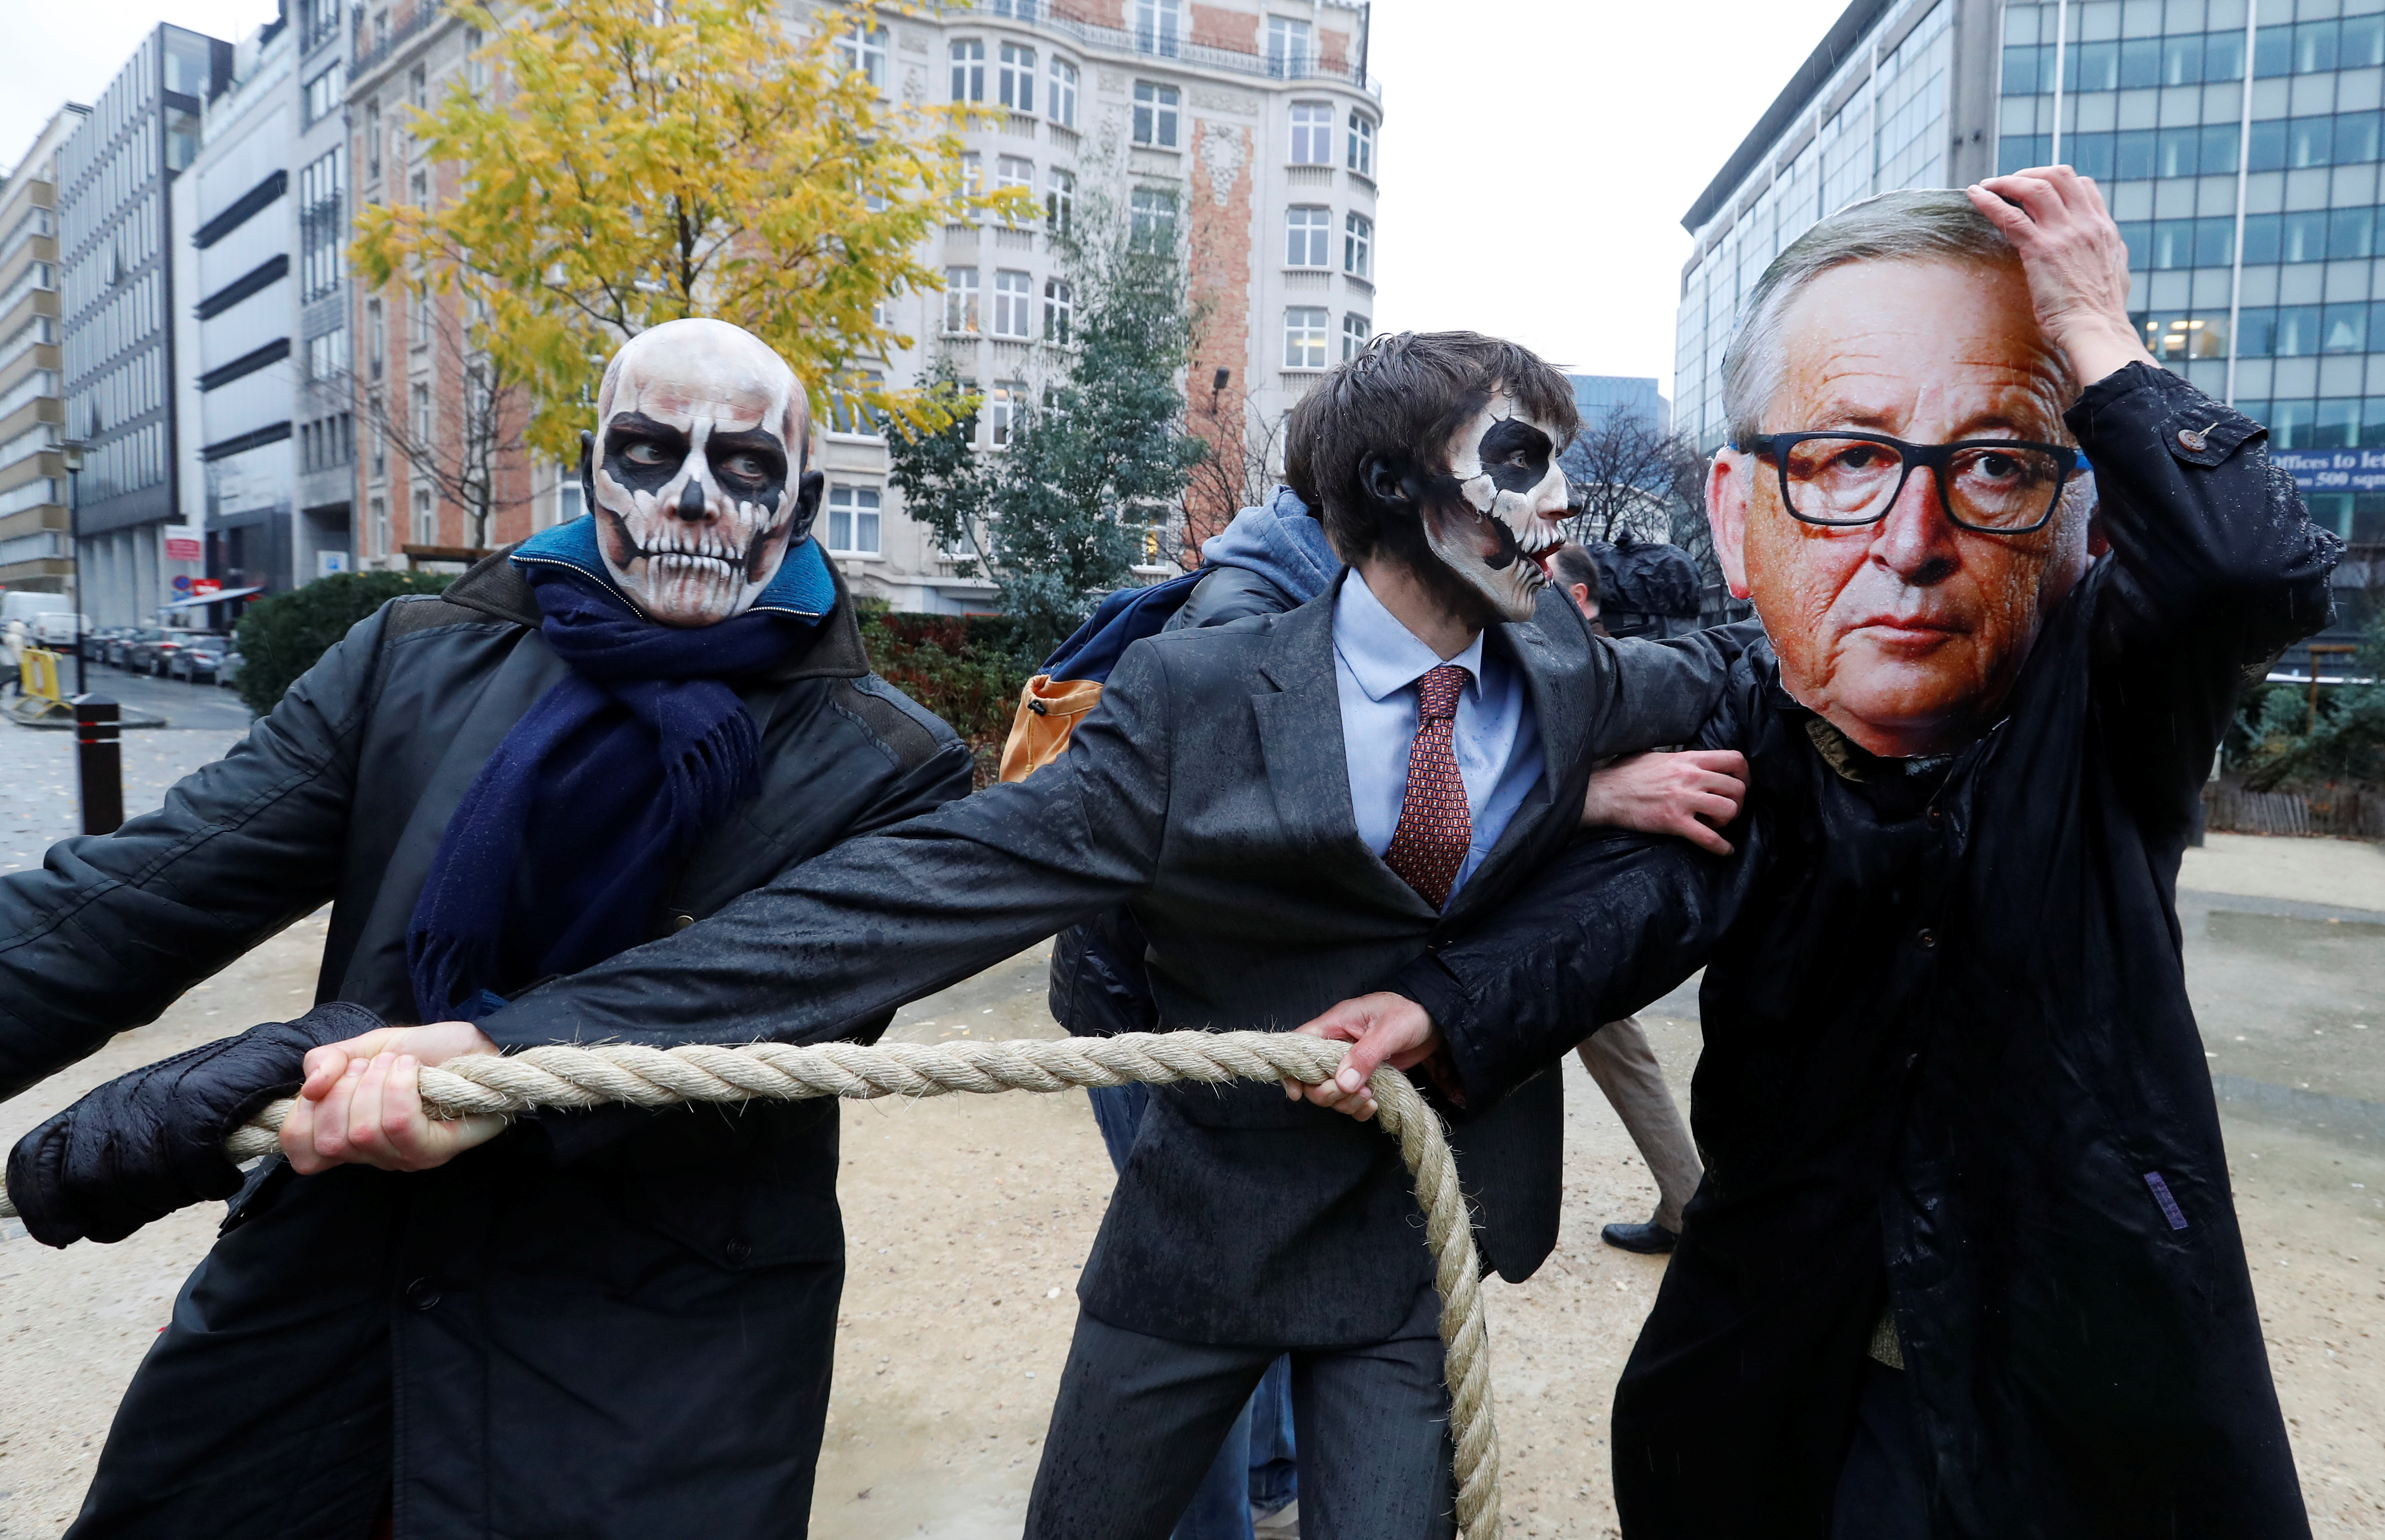 Protestors wearing skulls and European Commission President Jean-Claude Juncker demonstrate against a five-year extension of the license for weed-killer glyphosate that the European Commission will propose on Monday, in Brussels, Belgium, November 27, 2017. REUTERS/Yves Herman - RC11837E82B0